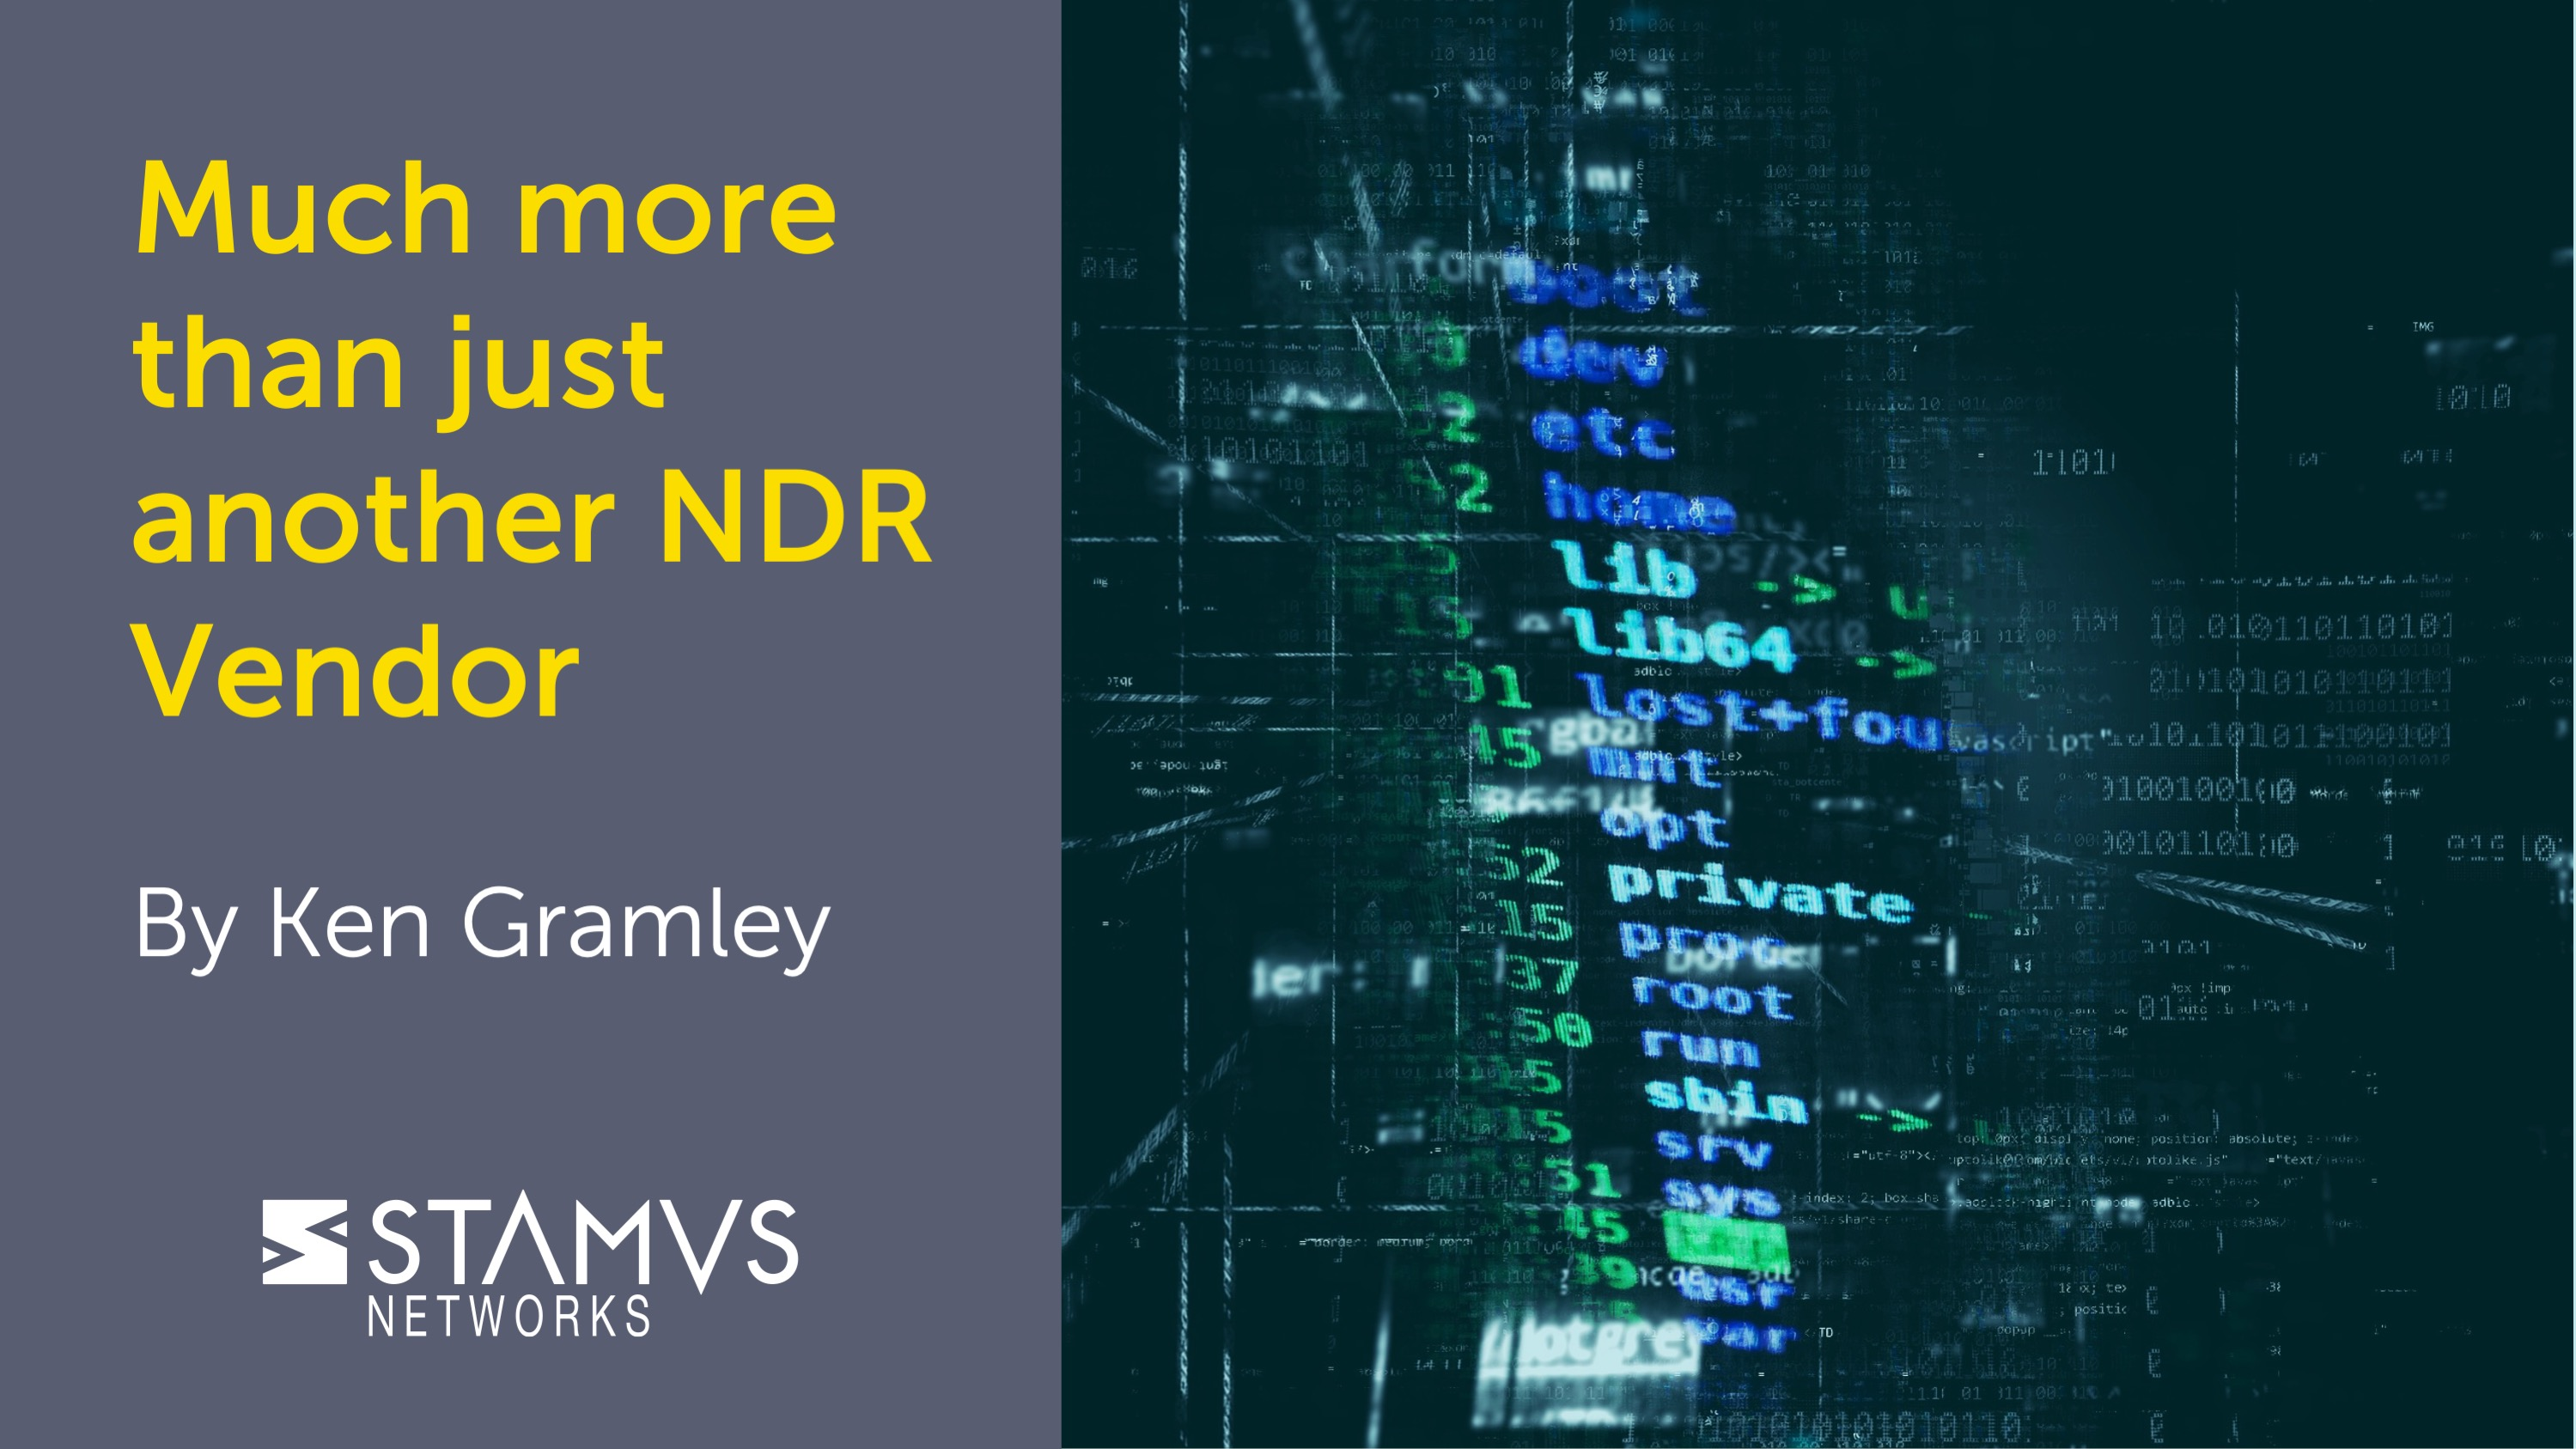 Stamus Networks - More than just another NDR Vendor